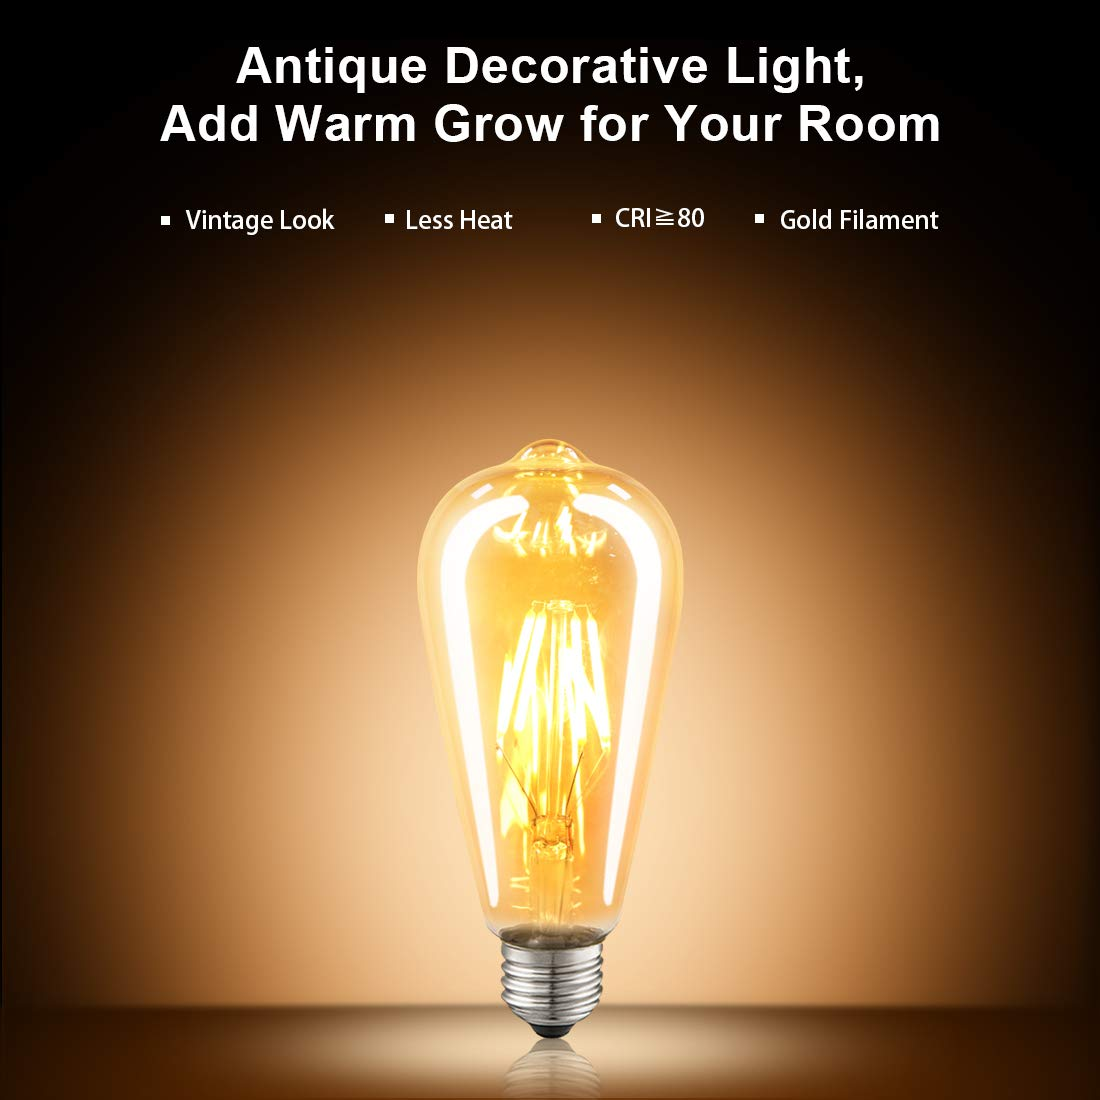 LED Edison Bulb Dimmable Amber Warm 2700K Antique Vintage Style Filament Light Bulbs 40W Equivalent E26 Base 6-Pack by LUXON by LUXON (Image #5)